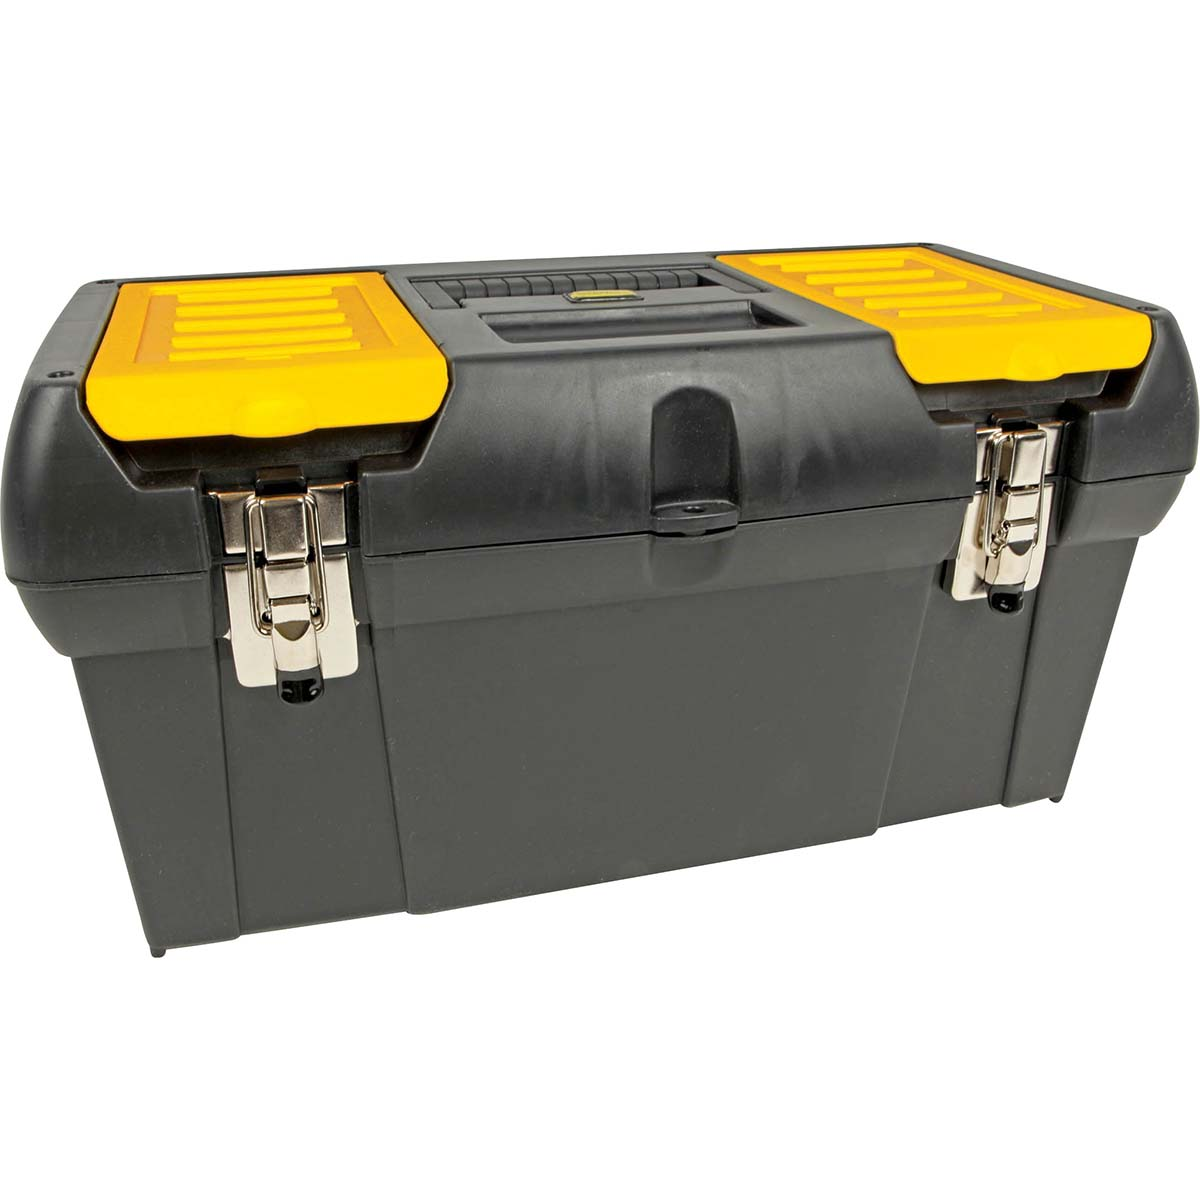 STANLEY® SERIES 2000 METAL LATCH TOOL BOX W/ TOTE TRAY - 19""